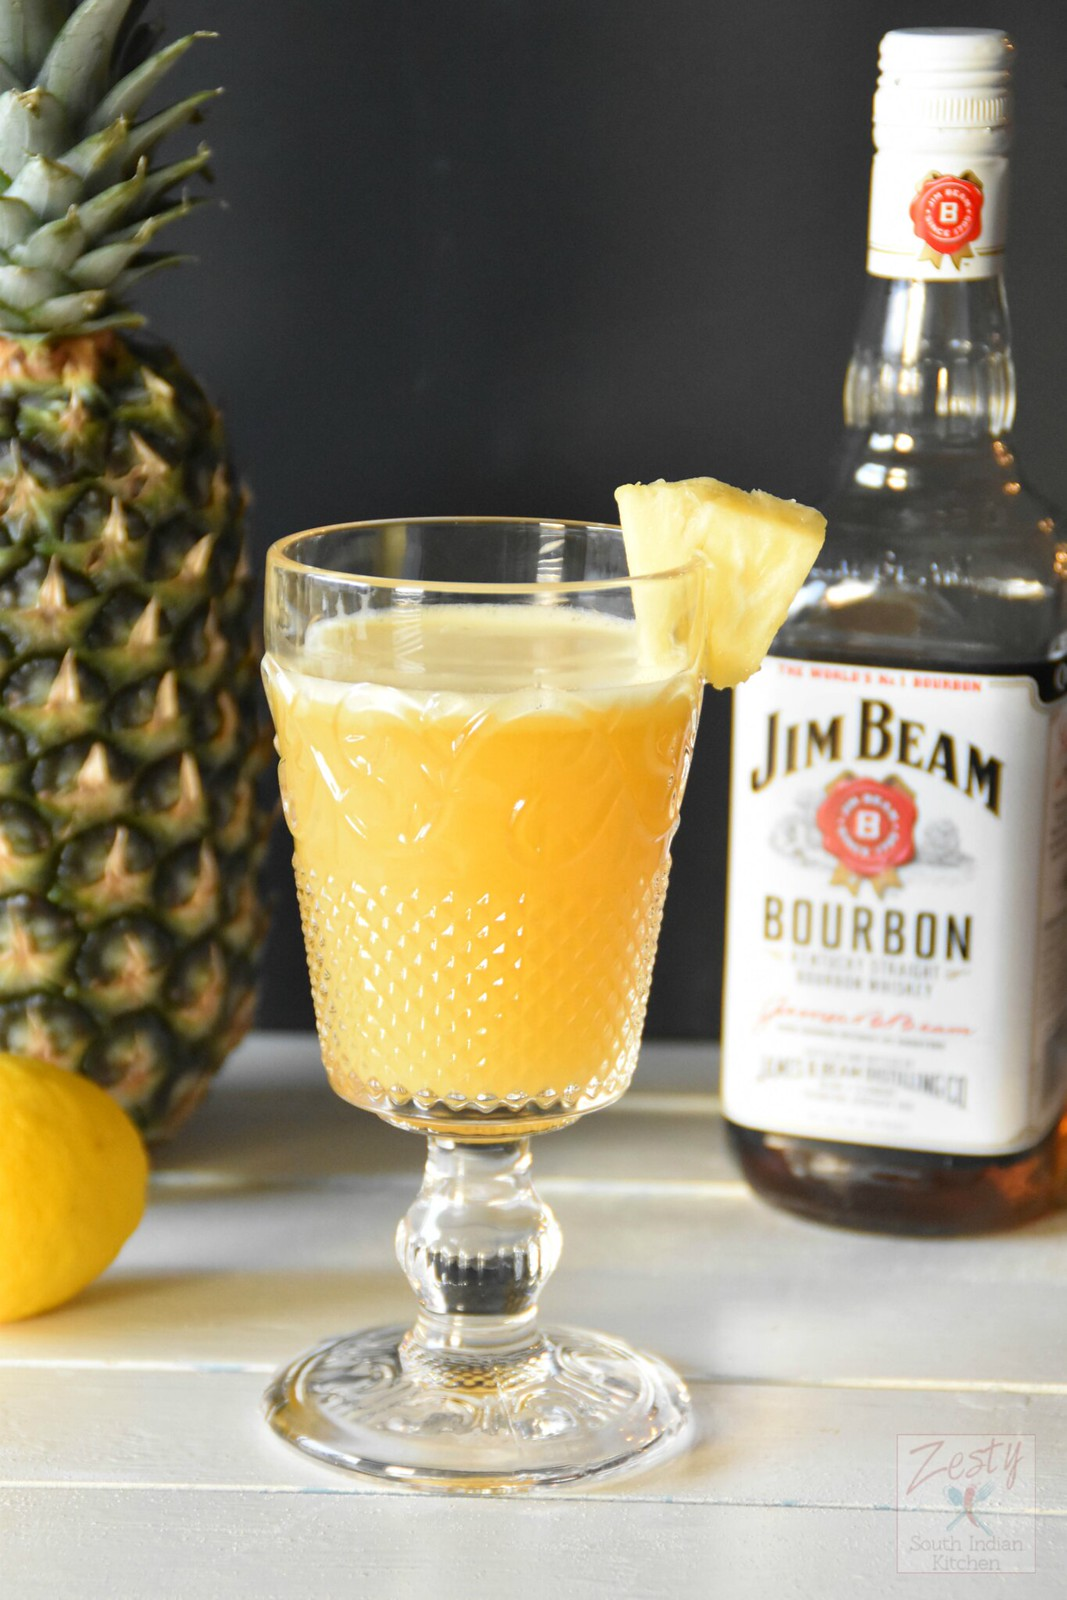 Tailgate Sipper A Pineapple Bourbon Cocktail Zesty South